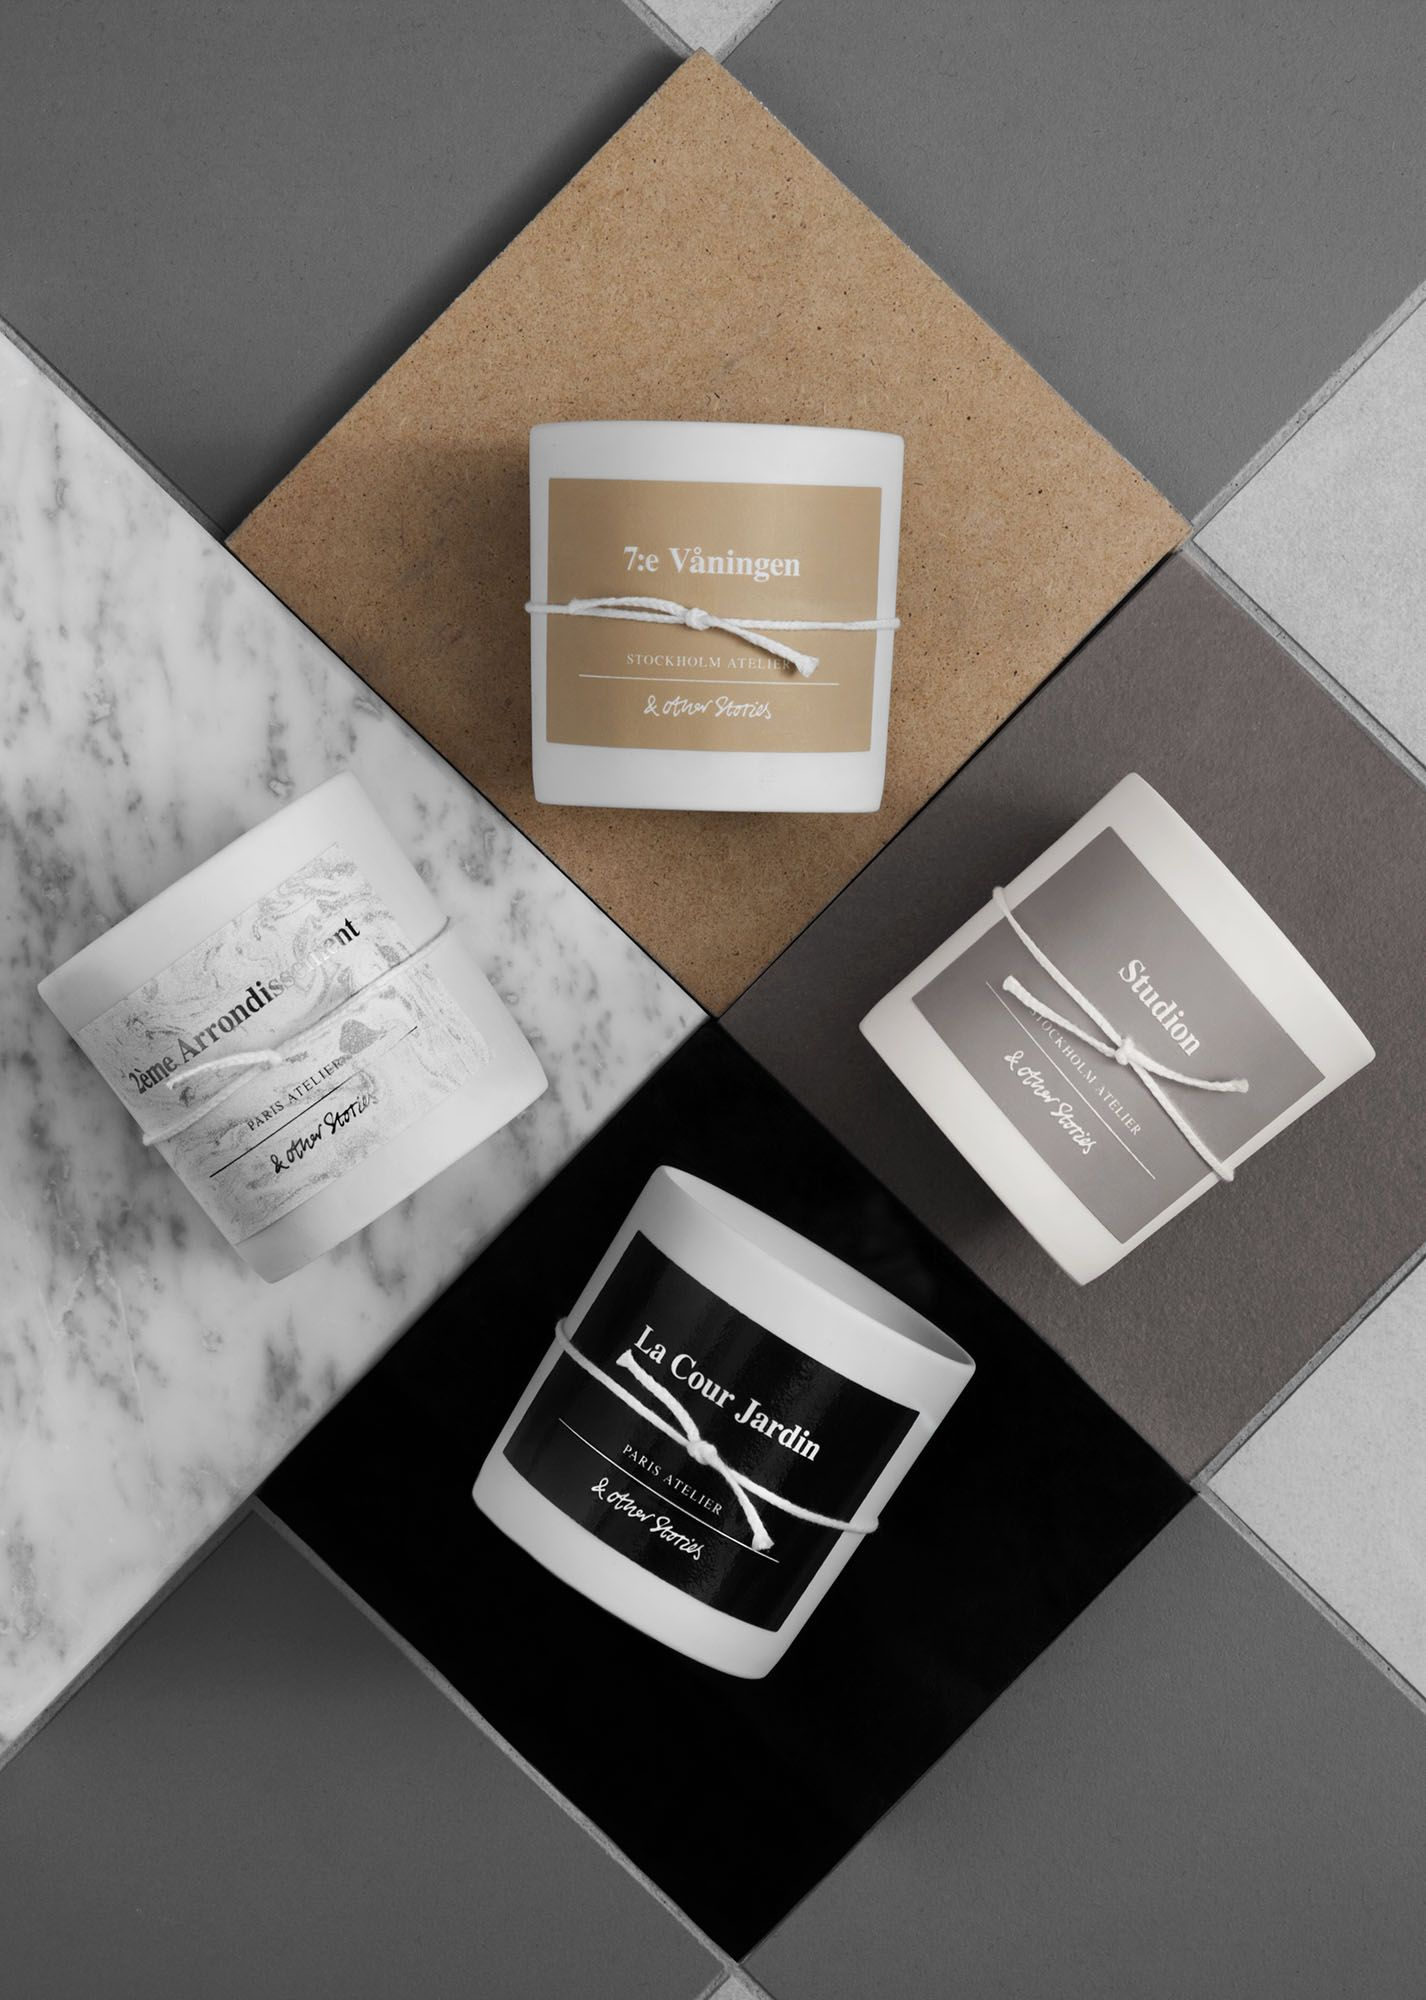 Discover the stories behind our new scented candles that capture the ...